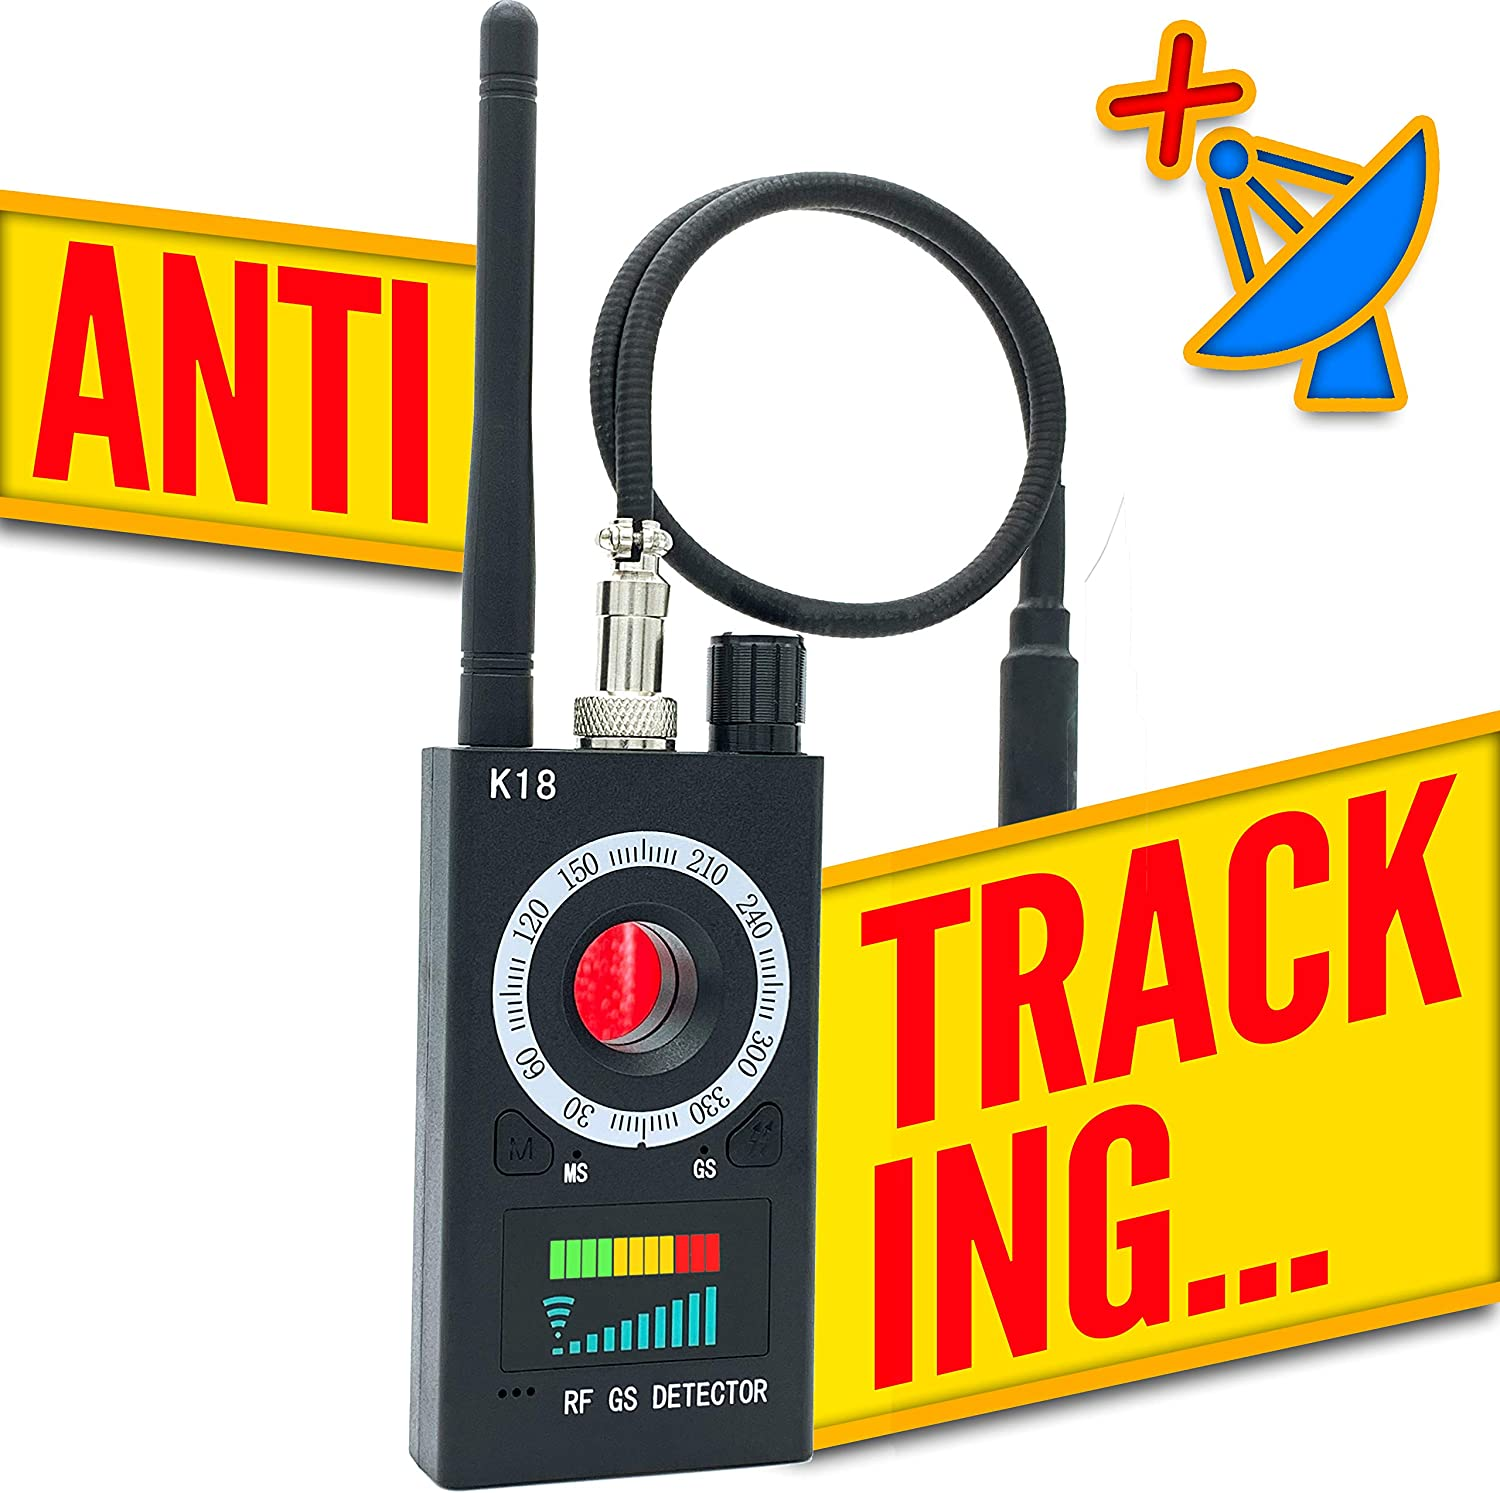 Anti Spy RF Detector Wireless Camera Finder and Bug Tracker with GPS Signal Detector and Portable Radio Scanner for Eavesdropping Devices